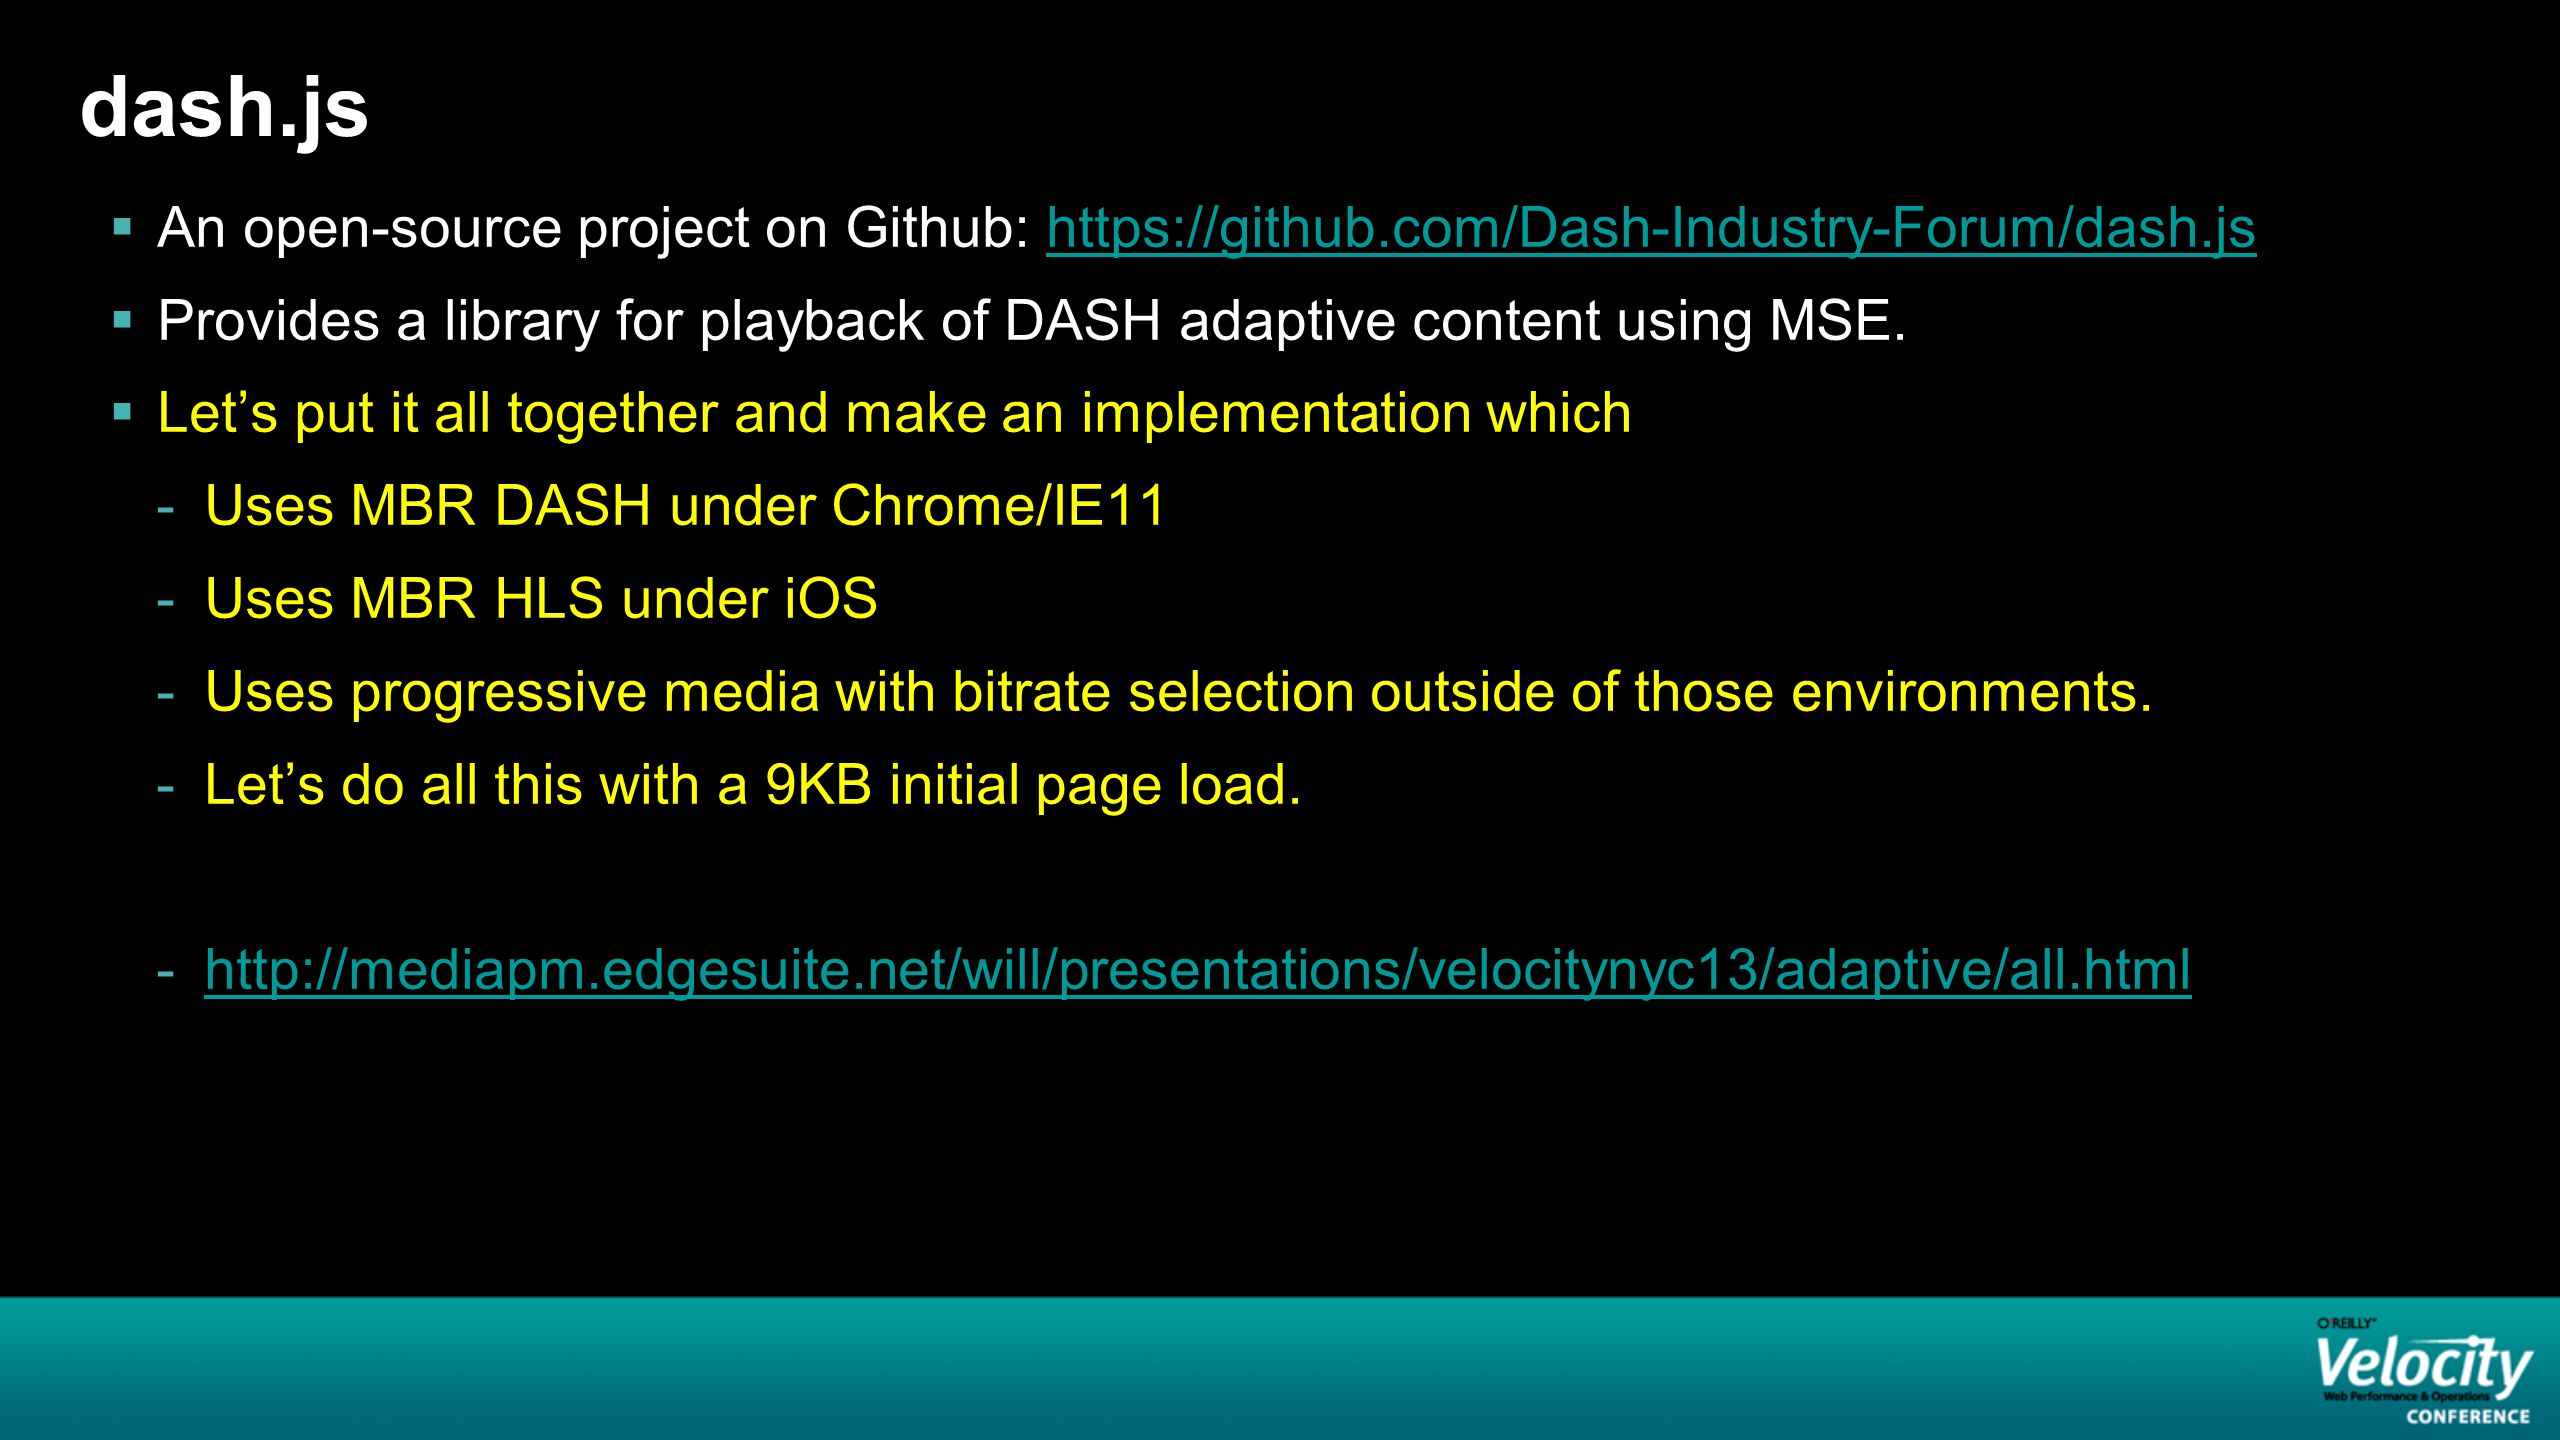 dash.js  An open-source project on Github: https://github.com/Dash-Industry-Forum/dash.jshttps://github.com/Dash-Industry-Forum/dash.js  Provides a library for playback of DASH adaptive content using MSE.